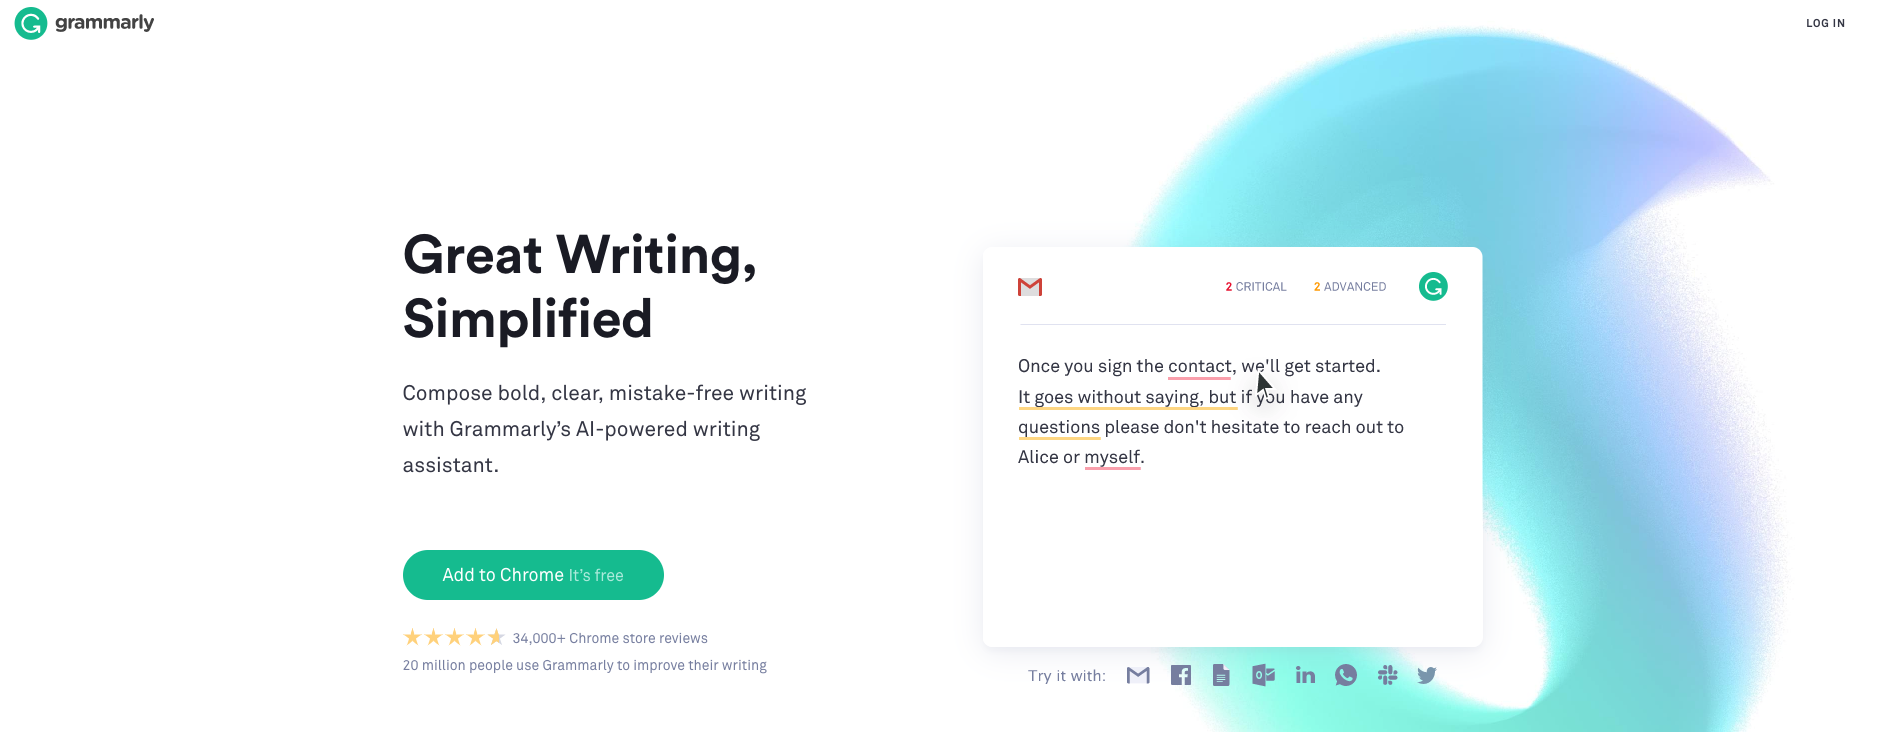 Cold Pitch Tools | Grammarly